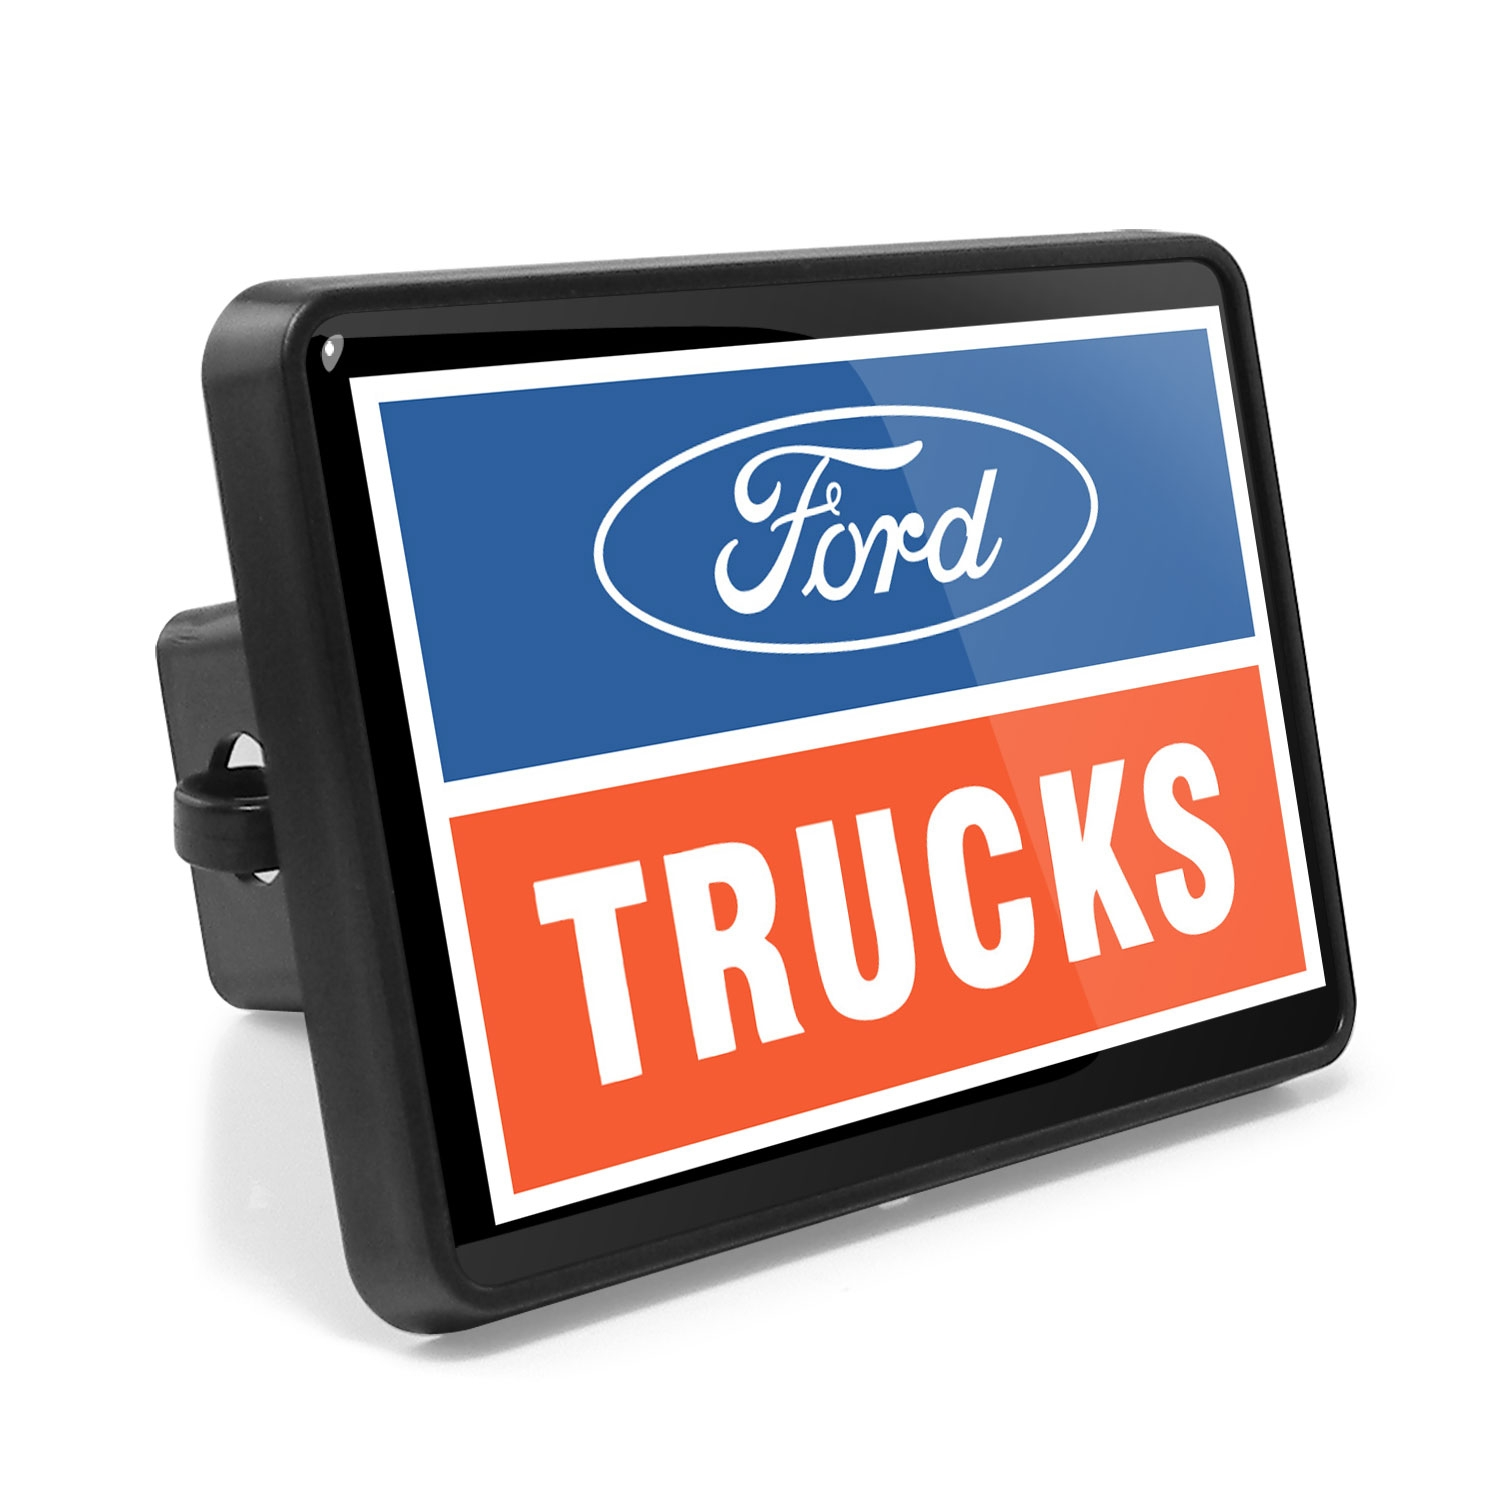 Ford Trucks UV Graphic Metal Plate on ABS Plastic 2 inch Tow Hitch Cover